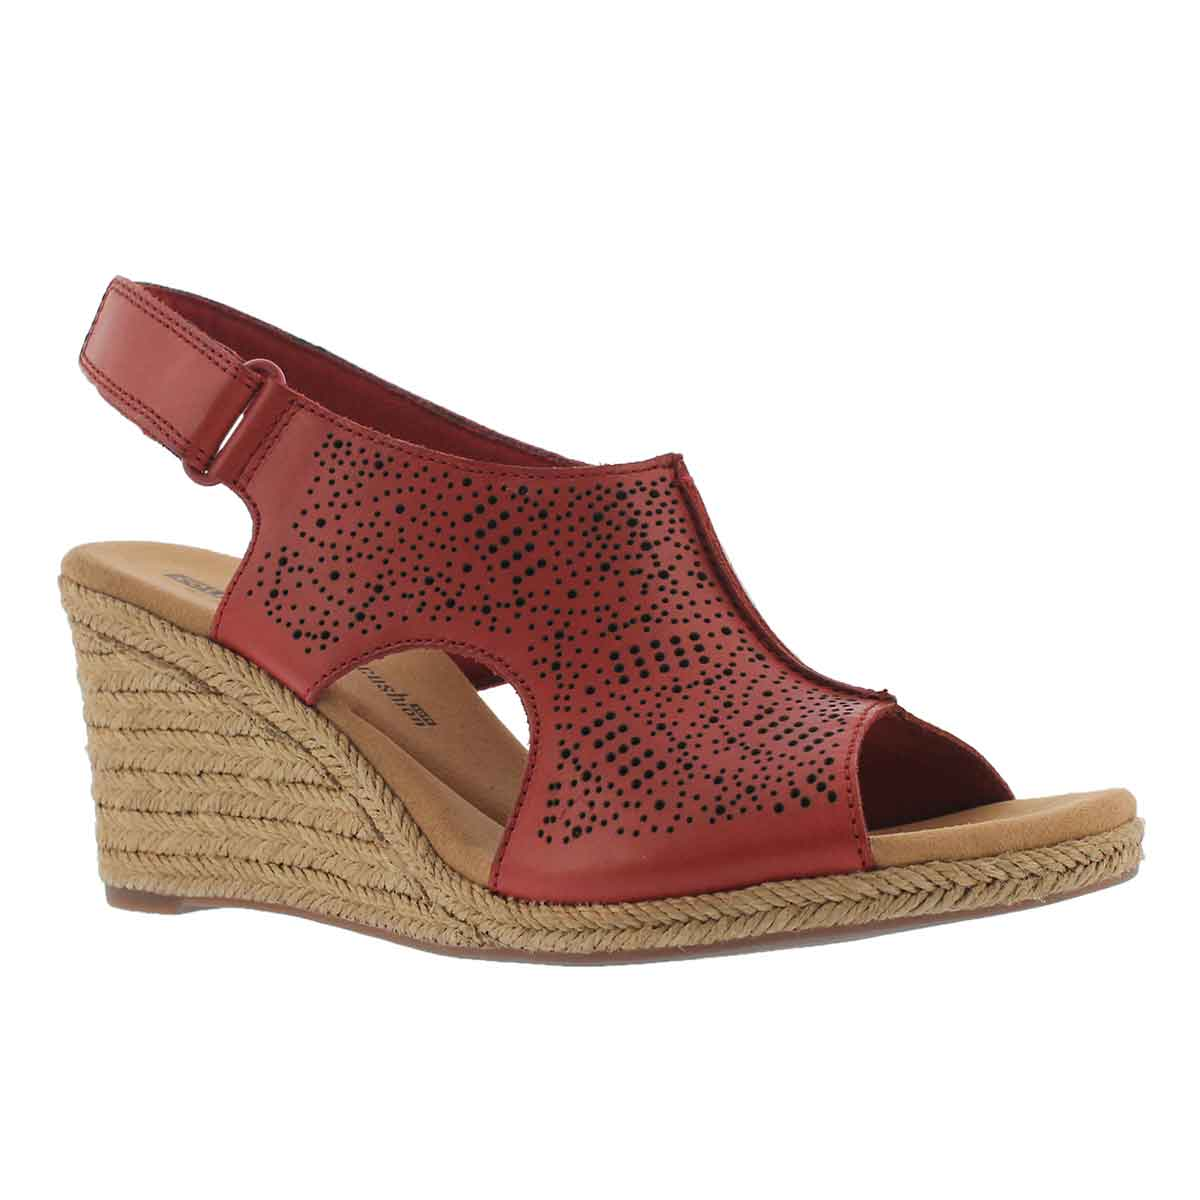 6522d07fff8c Clarks Women s LAFLEY ROSEN red wedge sandal